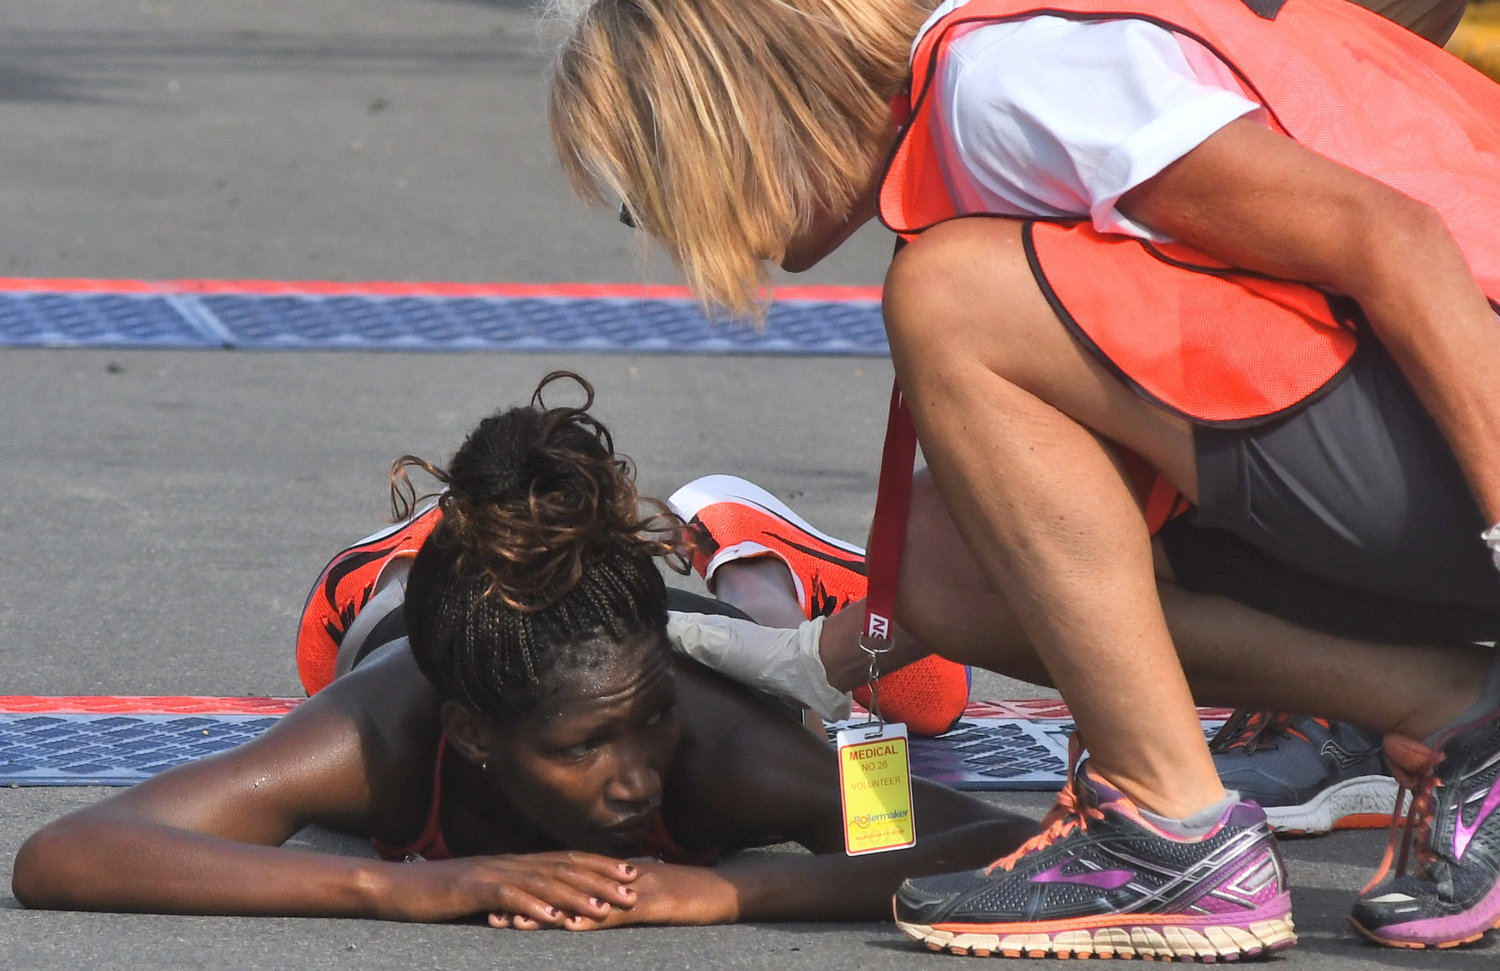 The second place finishing runner in the womans 15k collapsed at the finish line